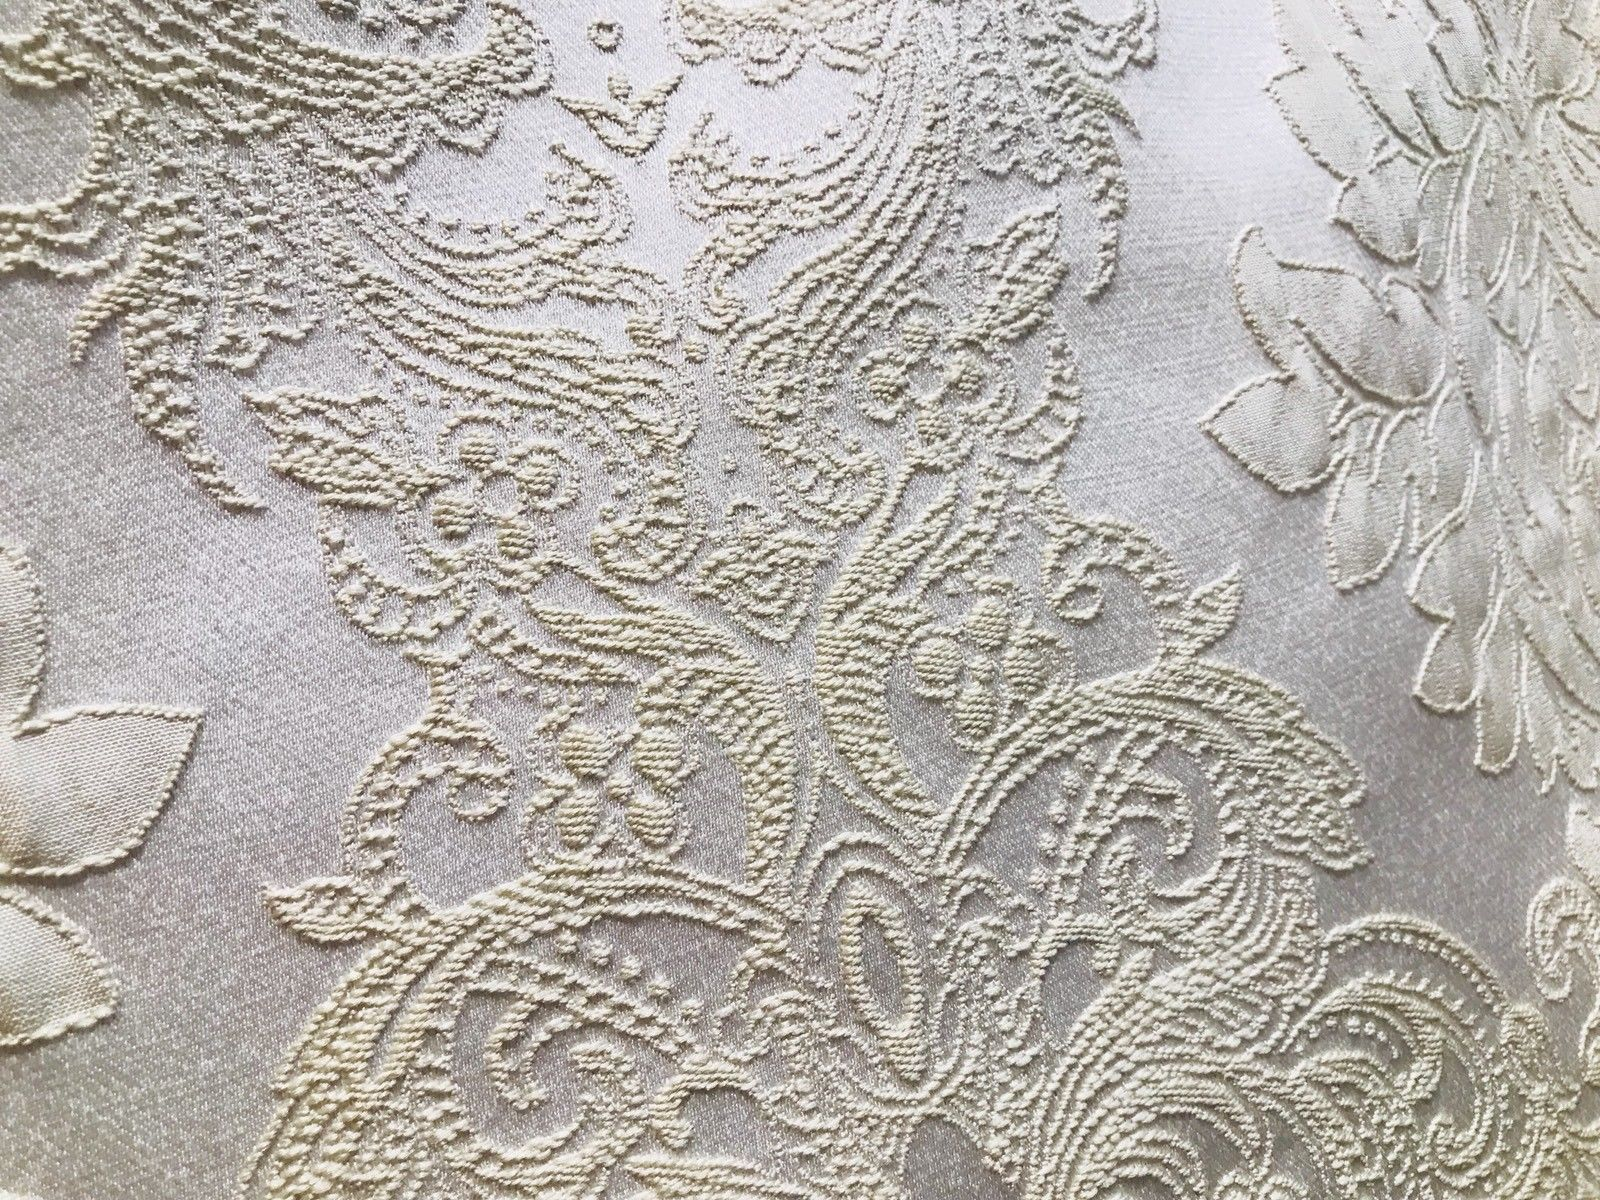 NEW Designer Brocade Damask Satin Upholstery Fabric- Pearl - By The Yard - Fancy Styles Fabric Pierre Frey Lee Jofa Brunschwig & Fils